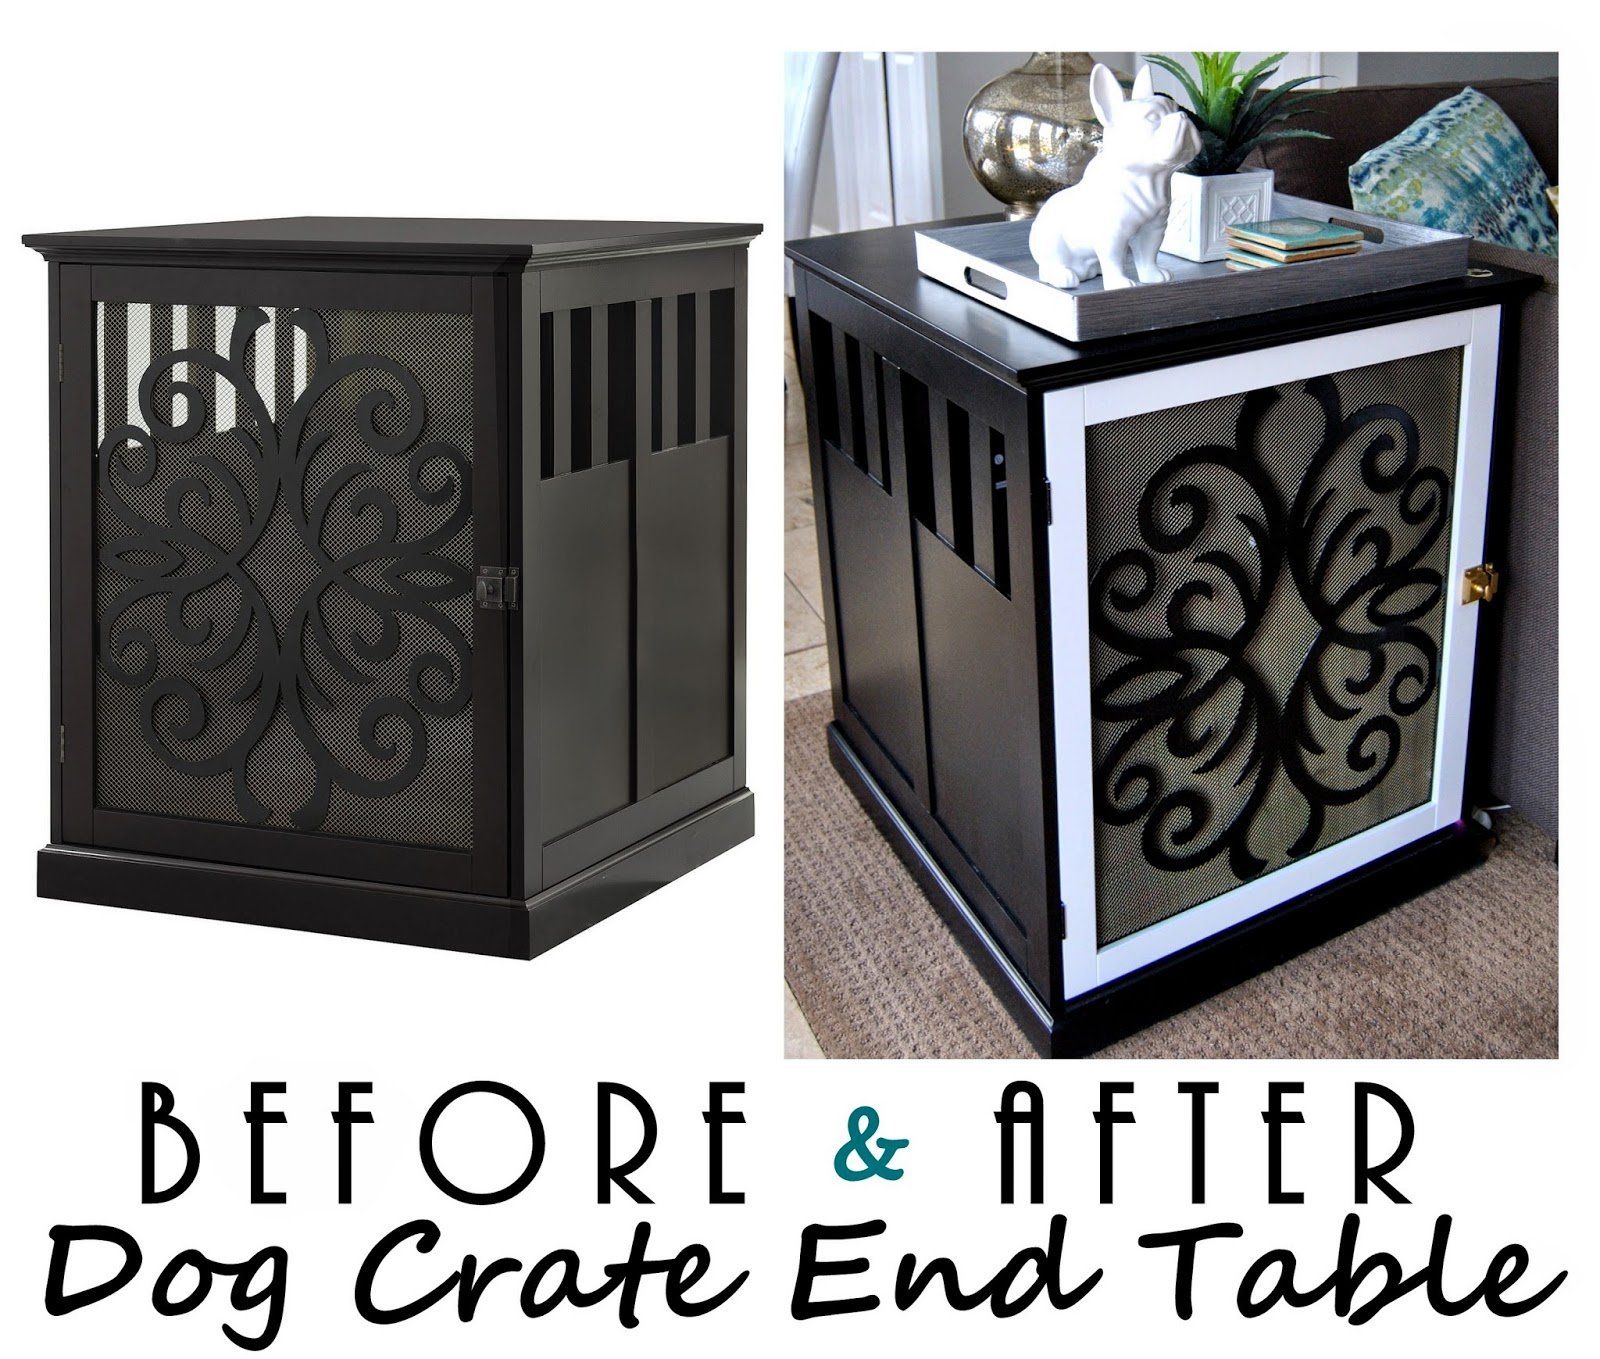 dog, dog crate, dog kennel, dog crate end table, dog crate side table ...